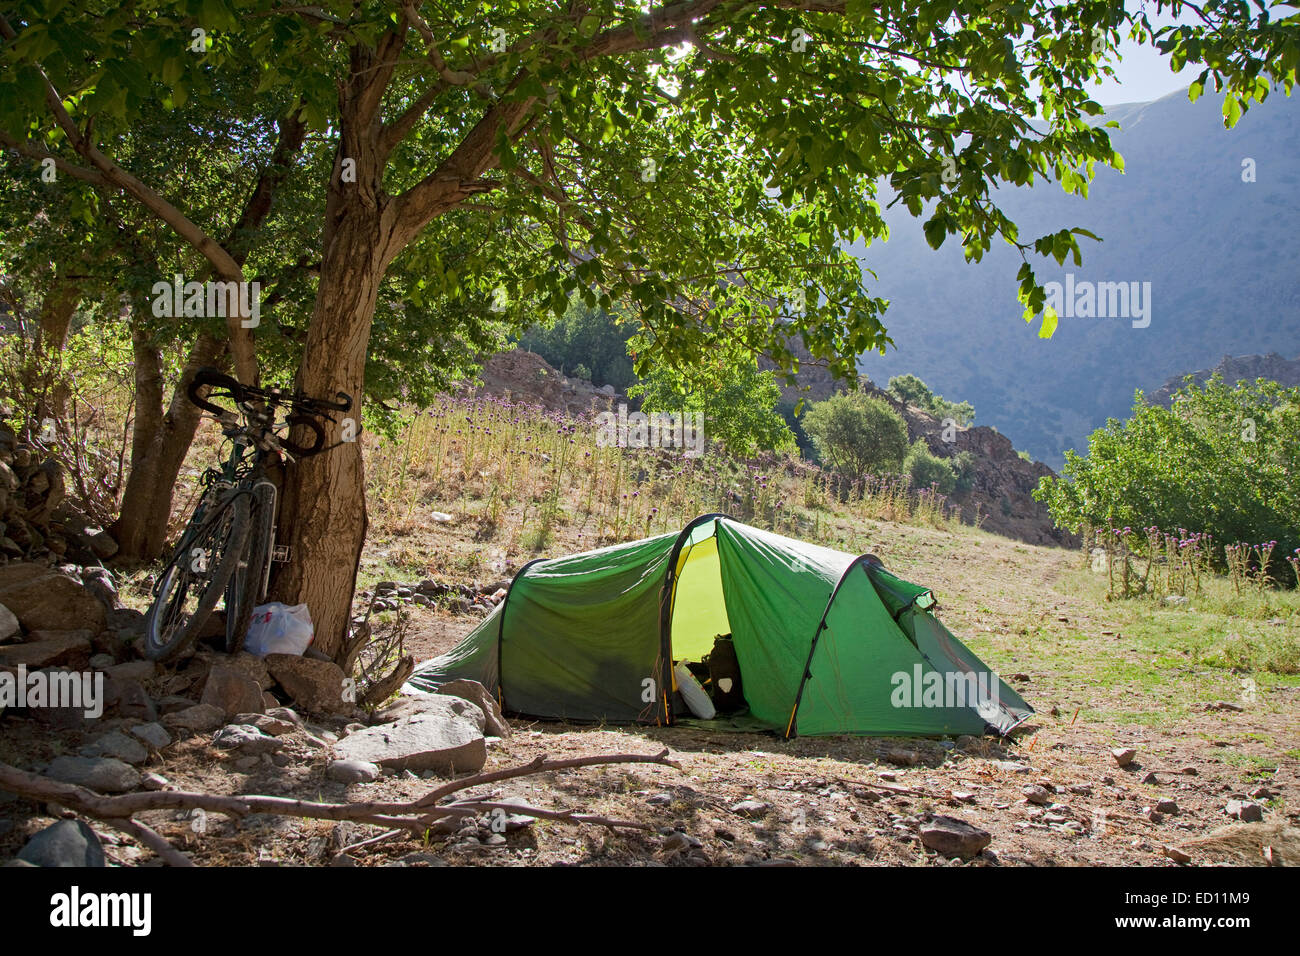 Touring cyclists free camping in the mountains of Eastern Anatolia, Turkey - Stock Image